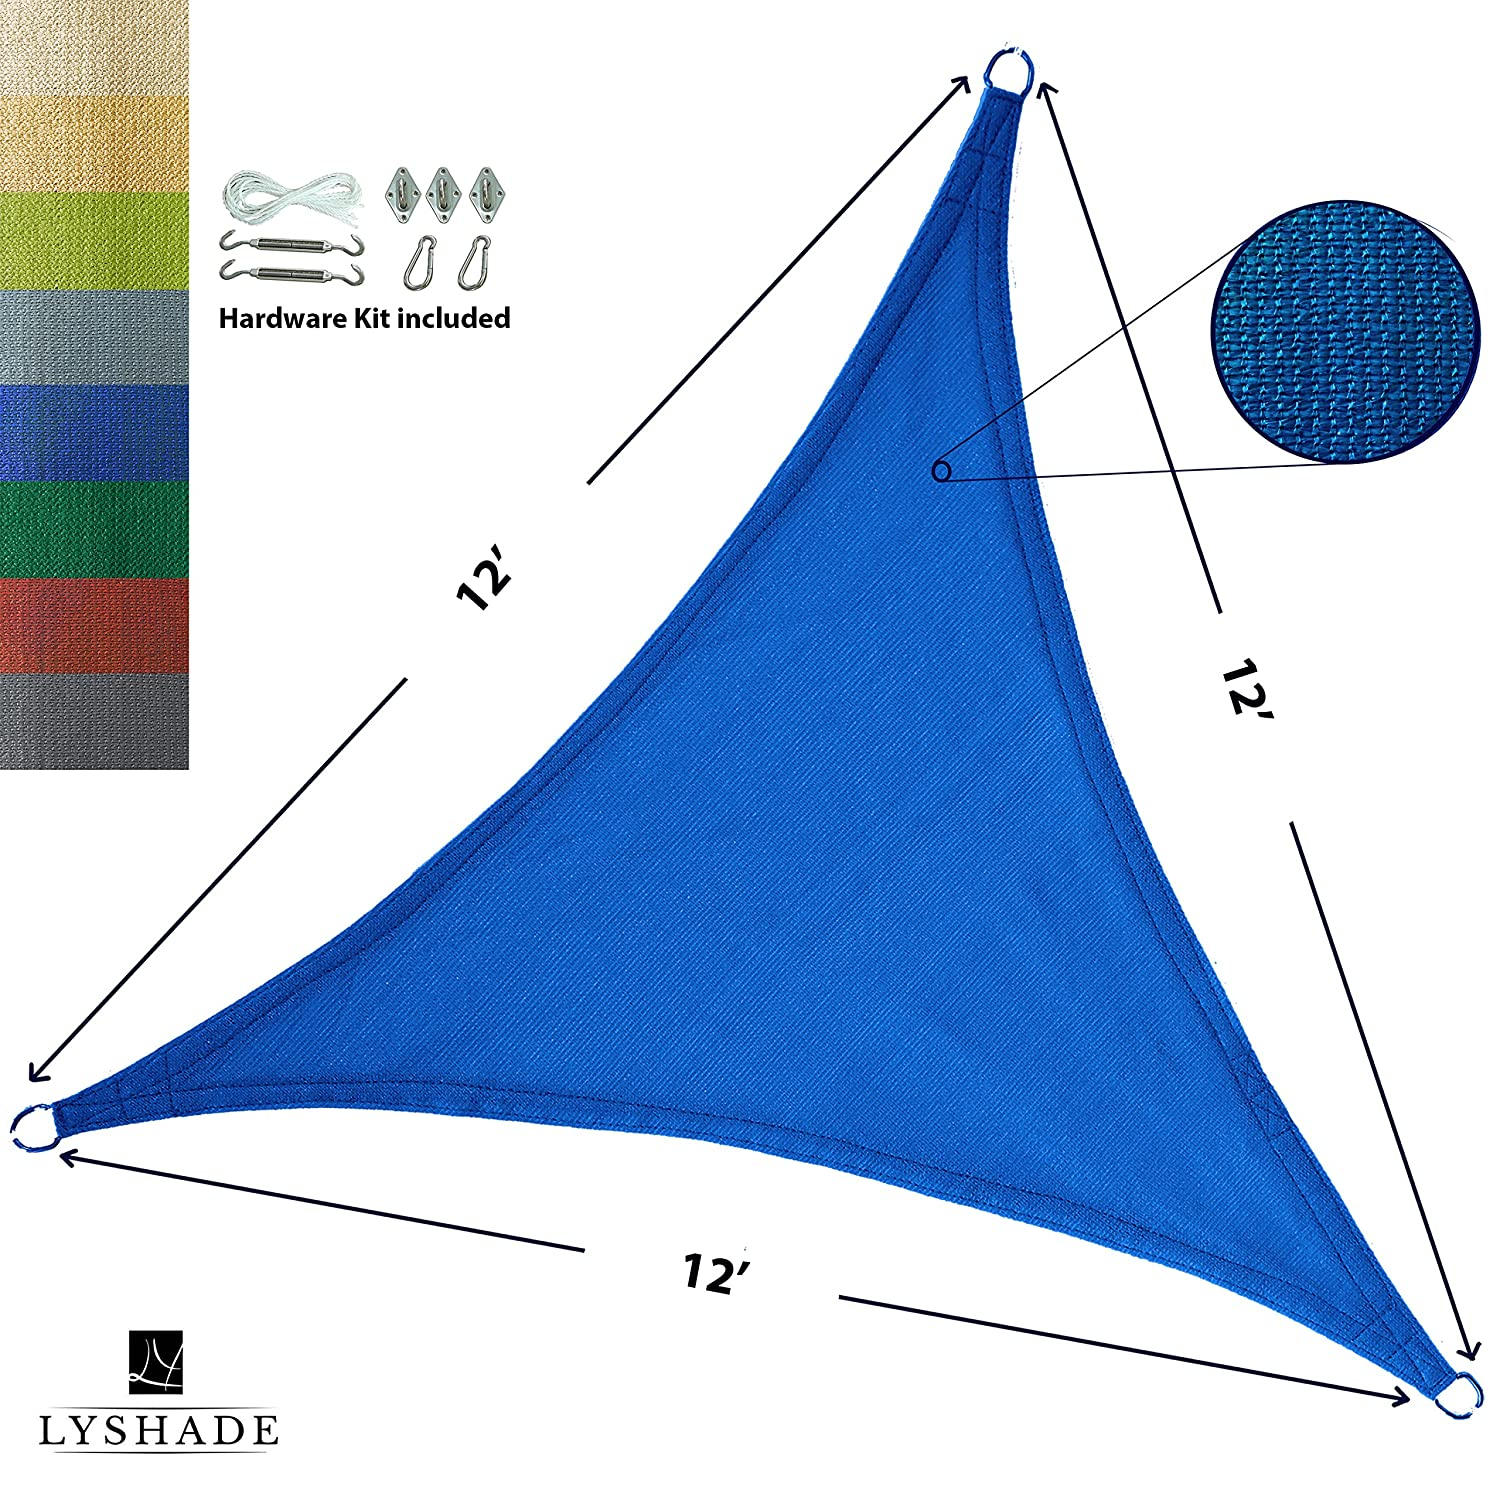 LyShade 12 x 12 x 12 Triangle Sun Shade Sail Canopy with Stainless Steel Hardware Kit Blue – UV Block for Patio and Outdoor